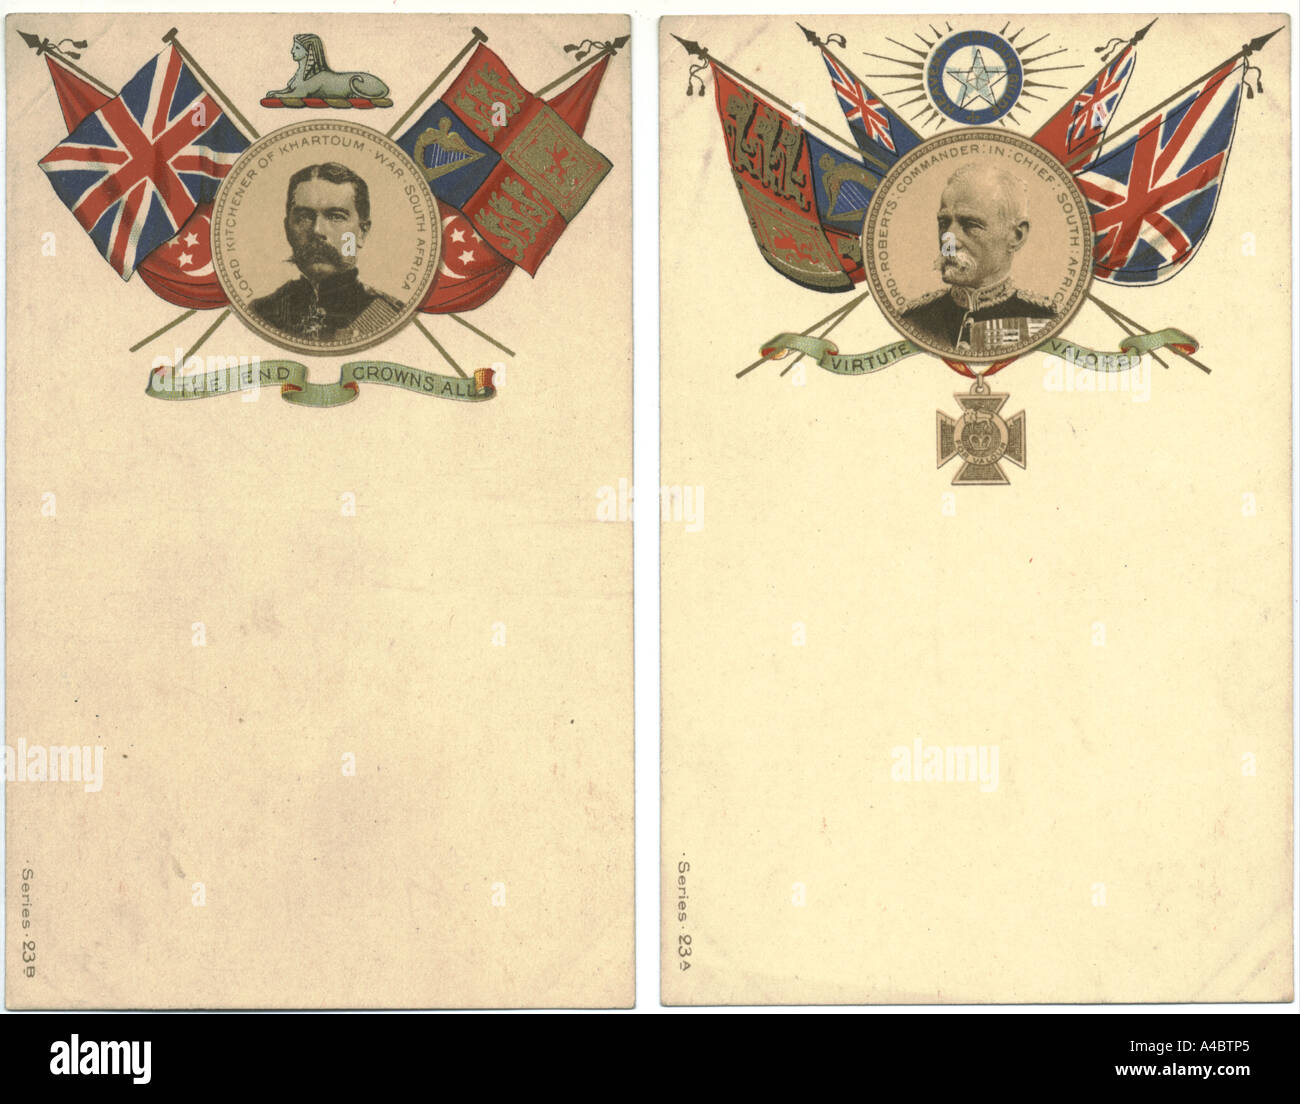 Boer war patriotic postcards circa 1901 with Lord Kitchener and Lord Roberts - Stock Image